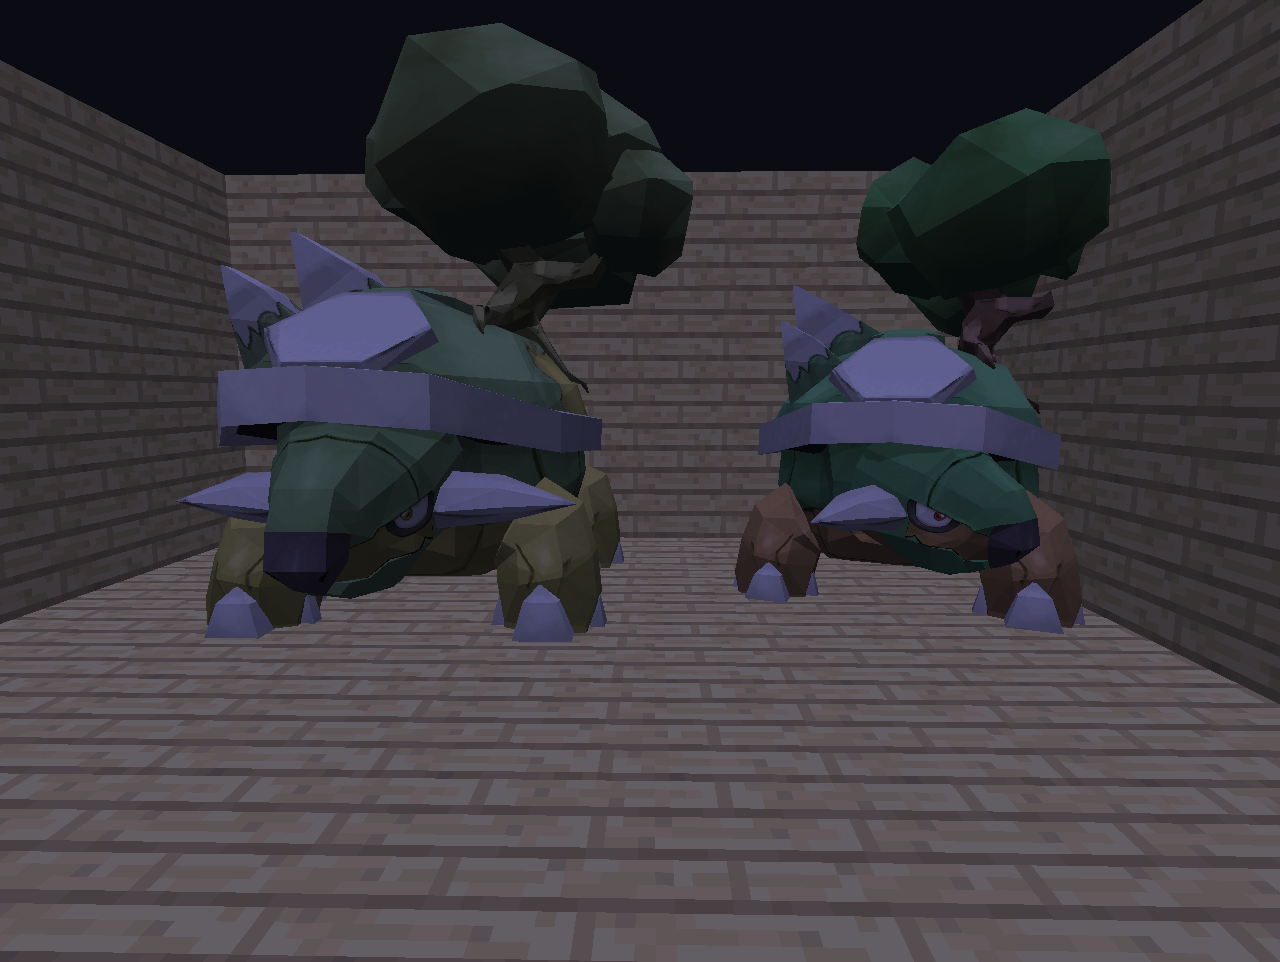 http://img2.wikia.nocookie.net/__cb20131101054133/pixelmon/images/9/96/2013-10-31_23.37.11.png